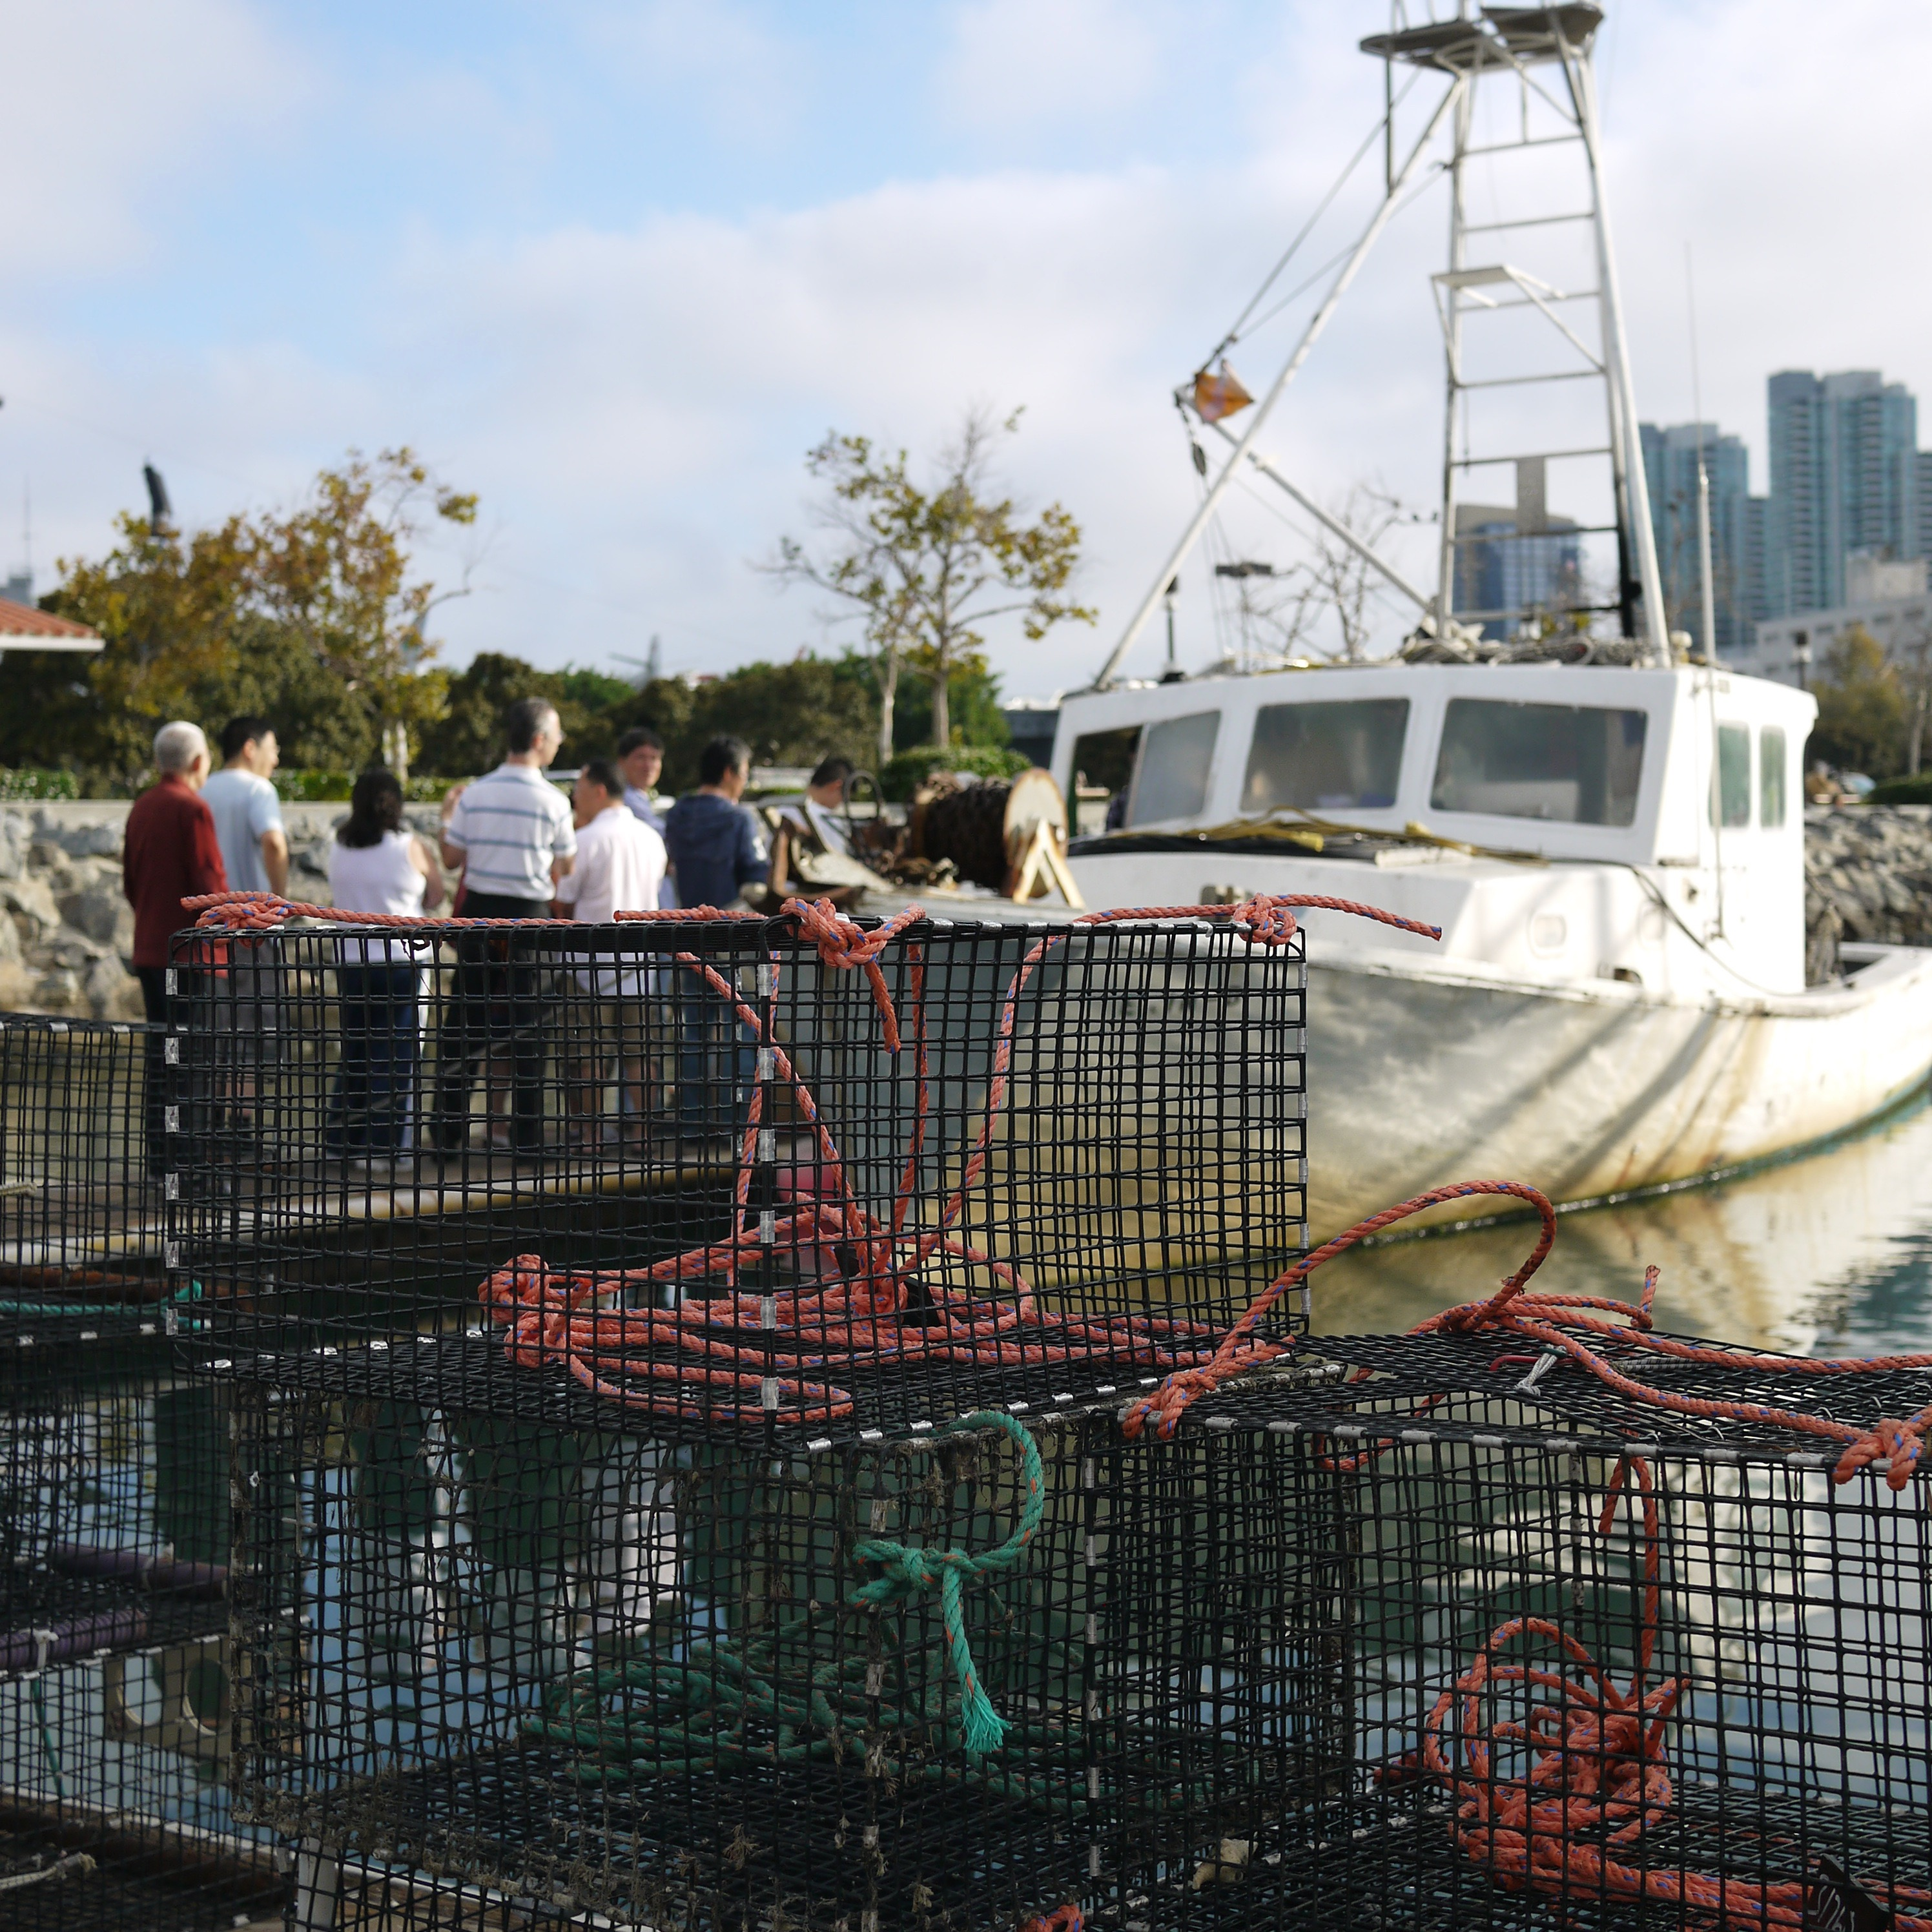 People on dock next to fishing boat with traps